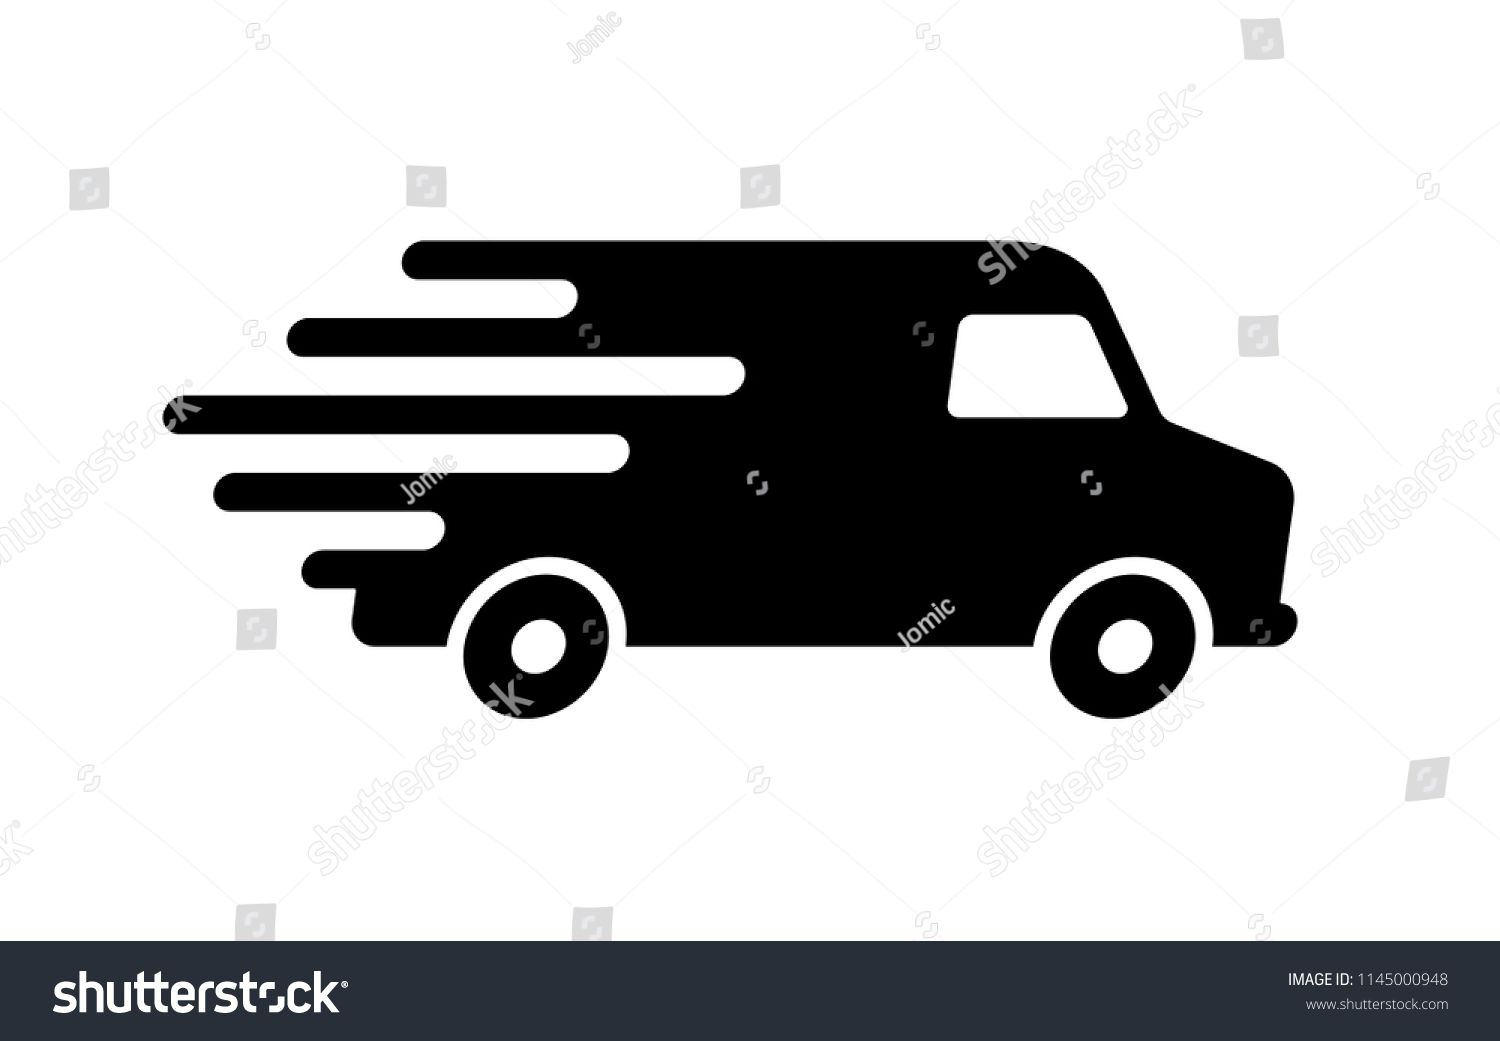 Shipping Fast Delivery Van Icon Symbol Pictogram Flat Design For